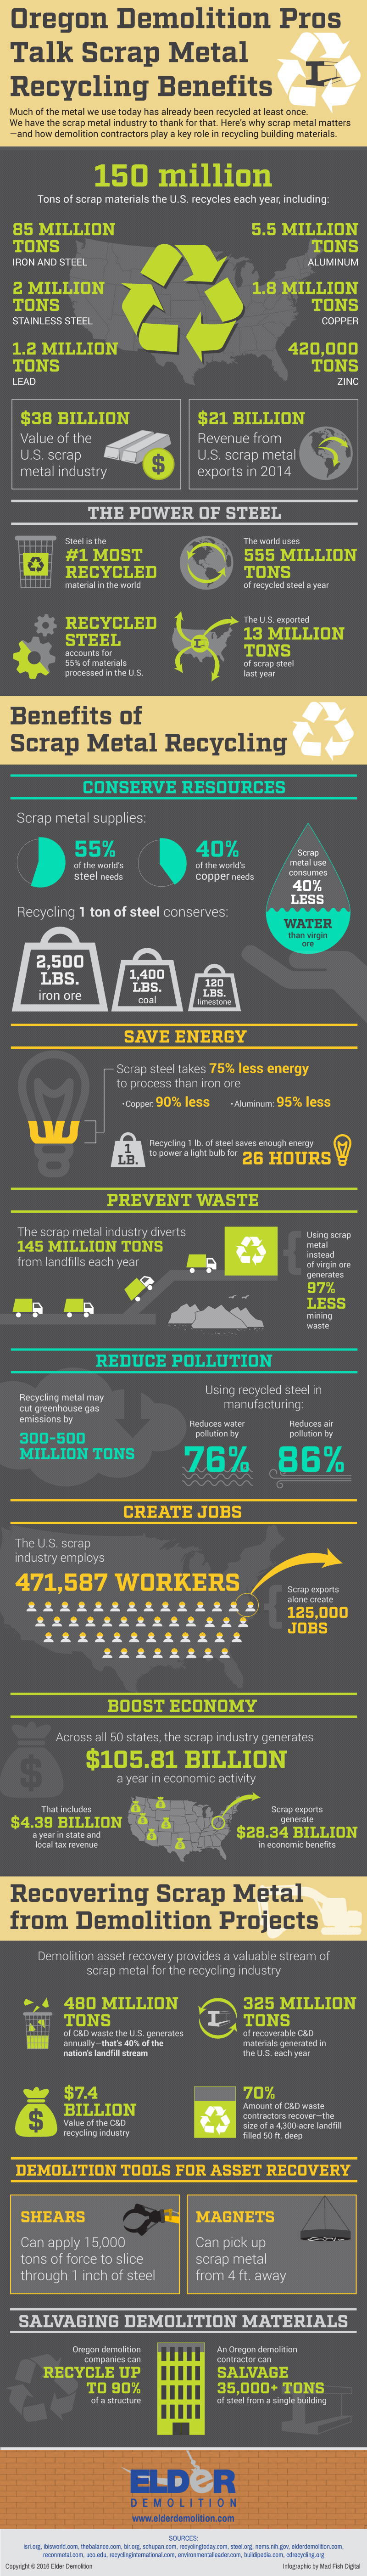 Scrap Metal Recycling Benefits